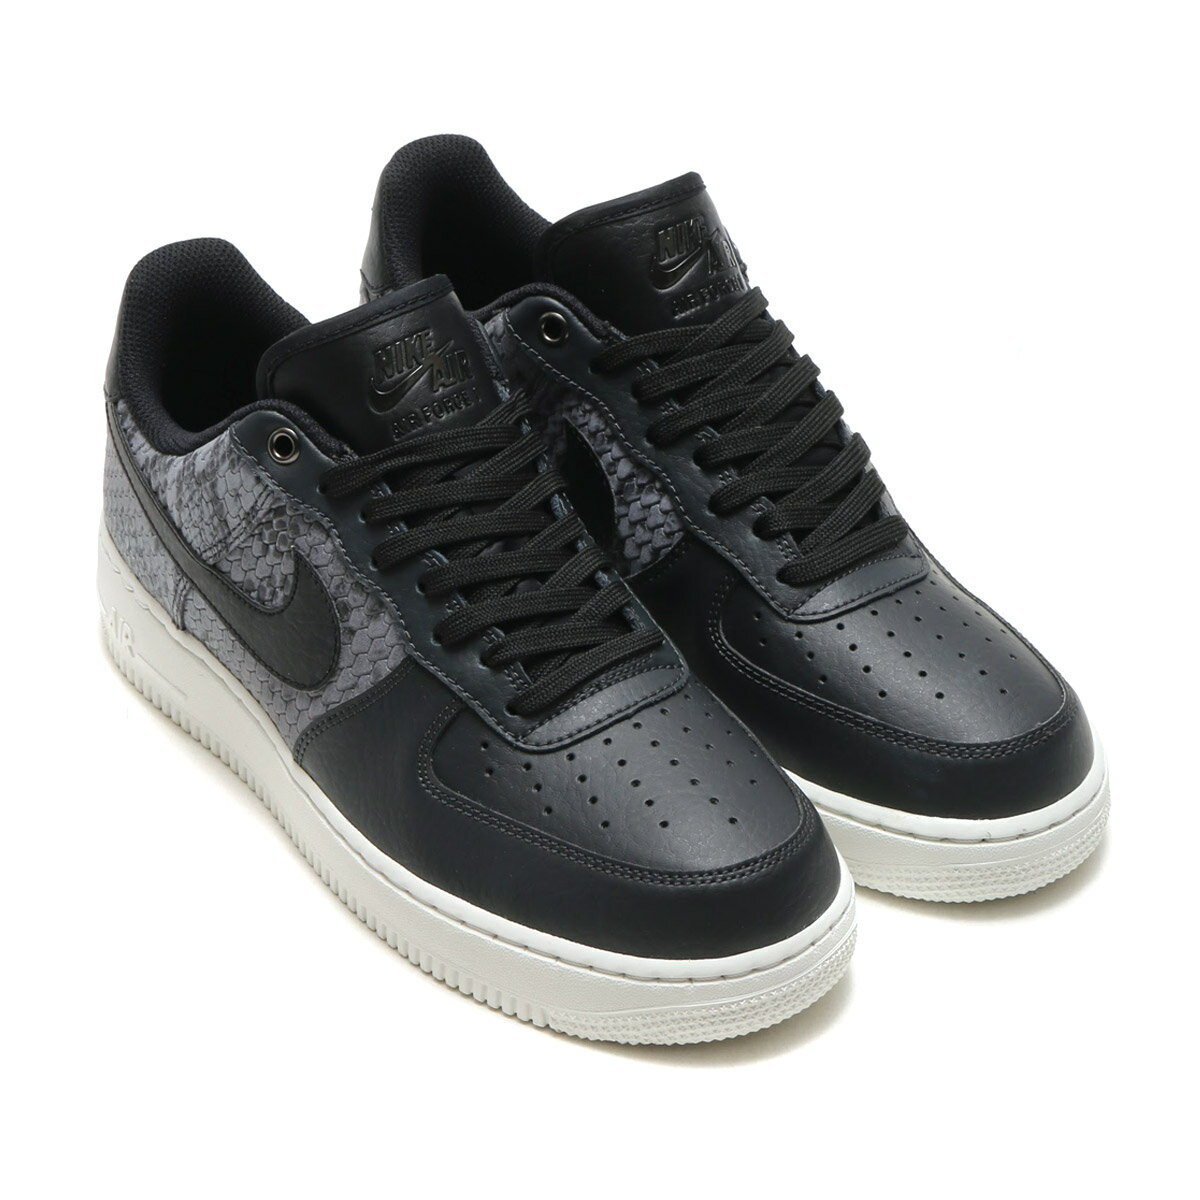 NIKE AIR FORCE 1 '07 LV8(ナイキ エア フォース 1 07 LV8)(ANTHRACITE/BLACK-SUMMIT WHITE)17FA-S